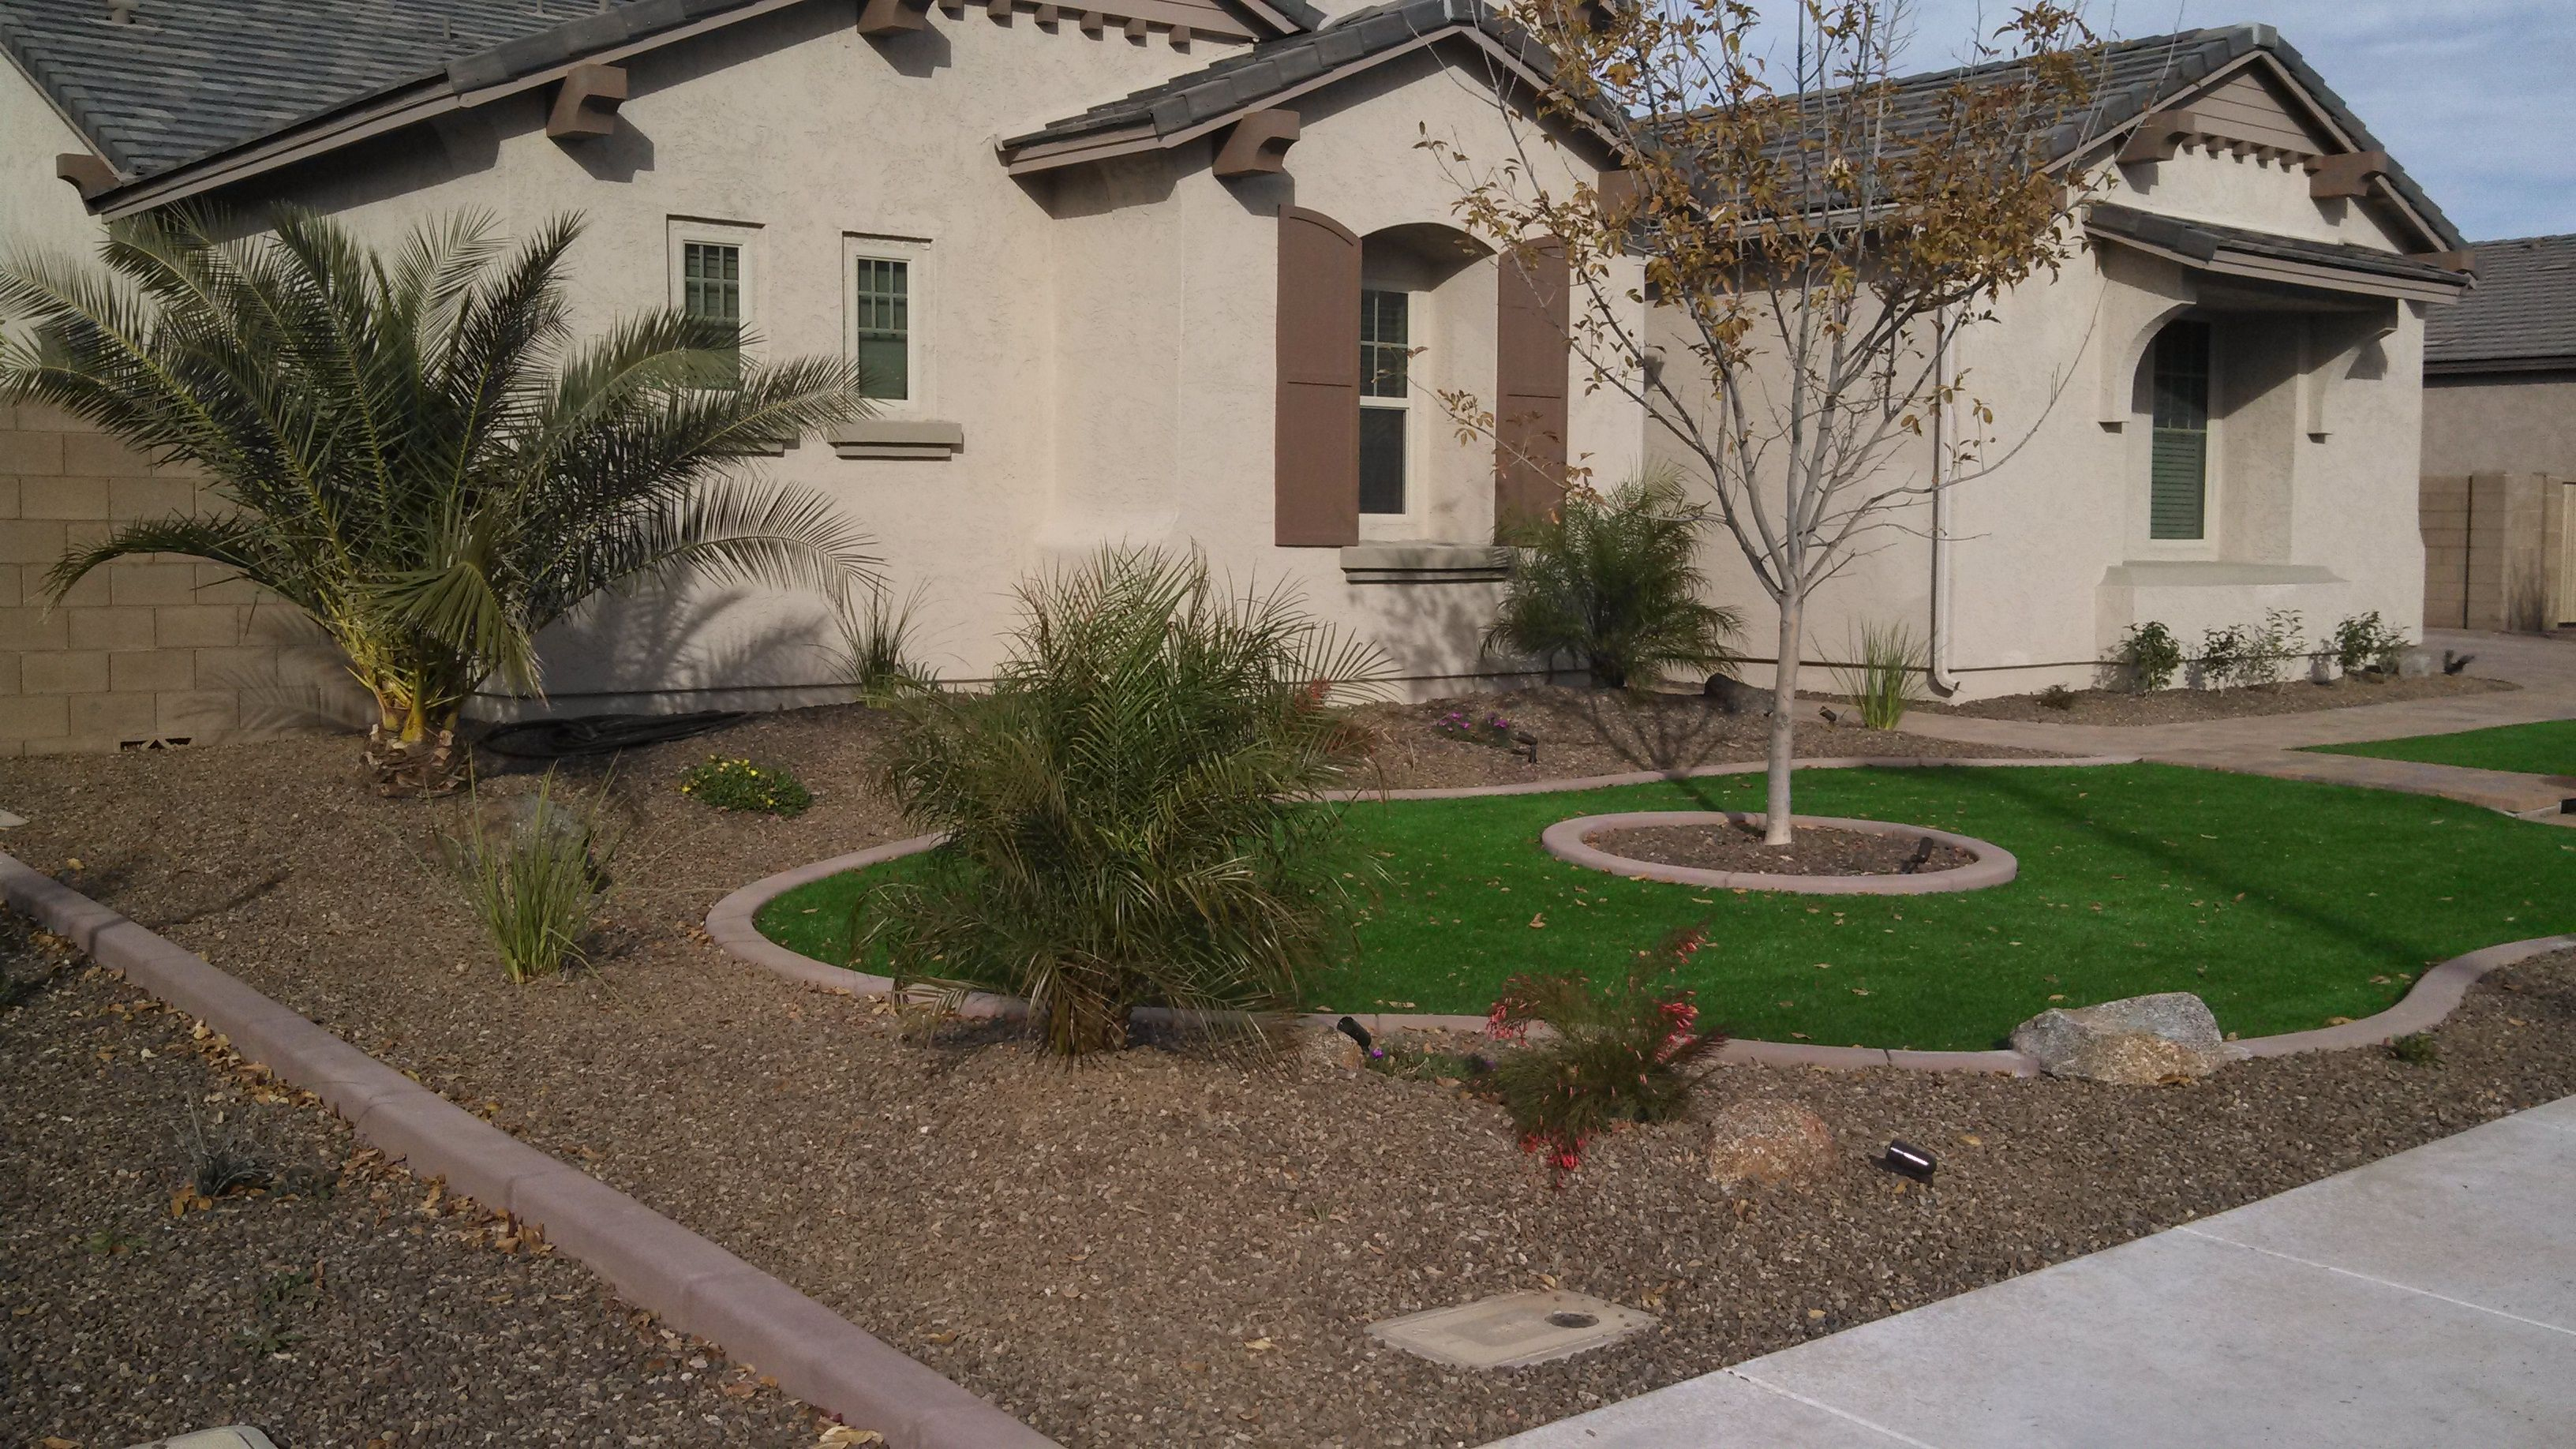 Desert Landscaping Ideas With Pavers And Artificial Turf Synthetic within Front And Backyard Landscaping Ideas